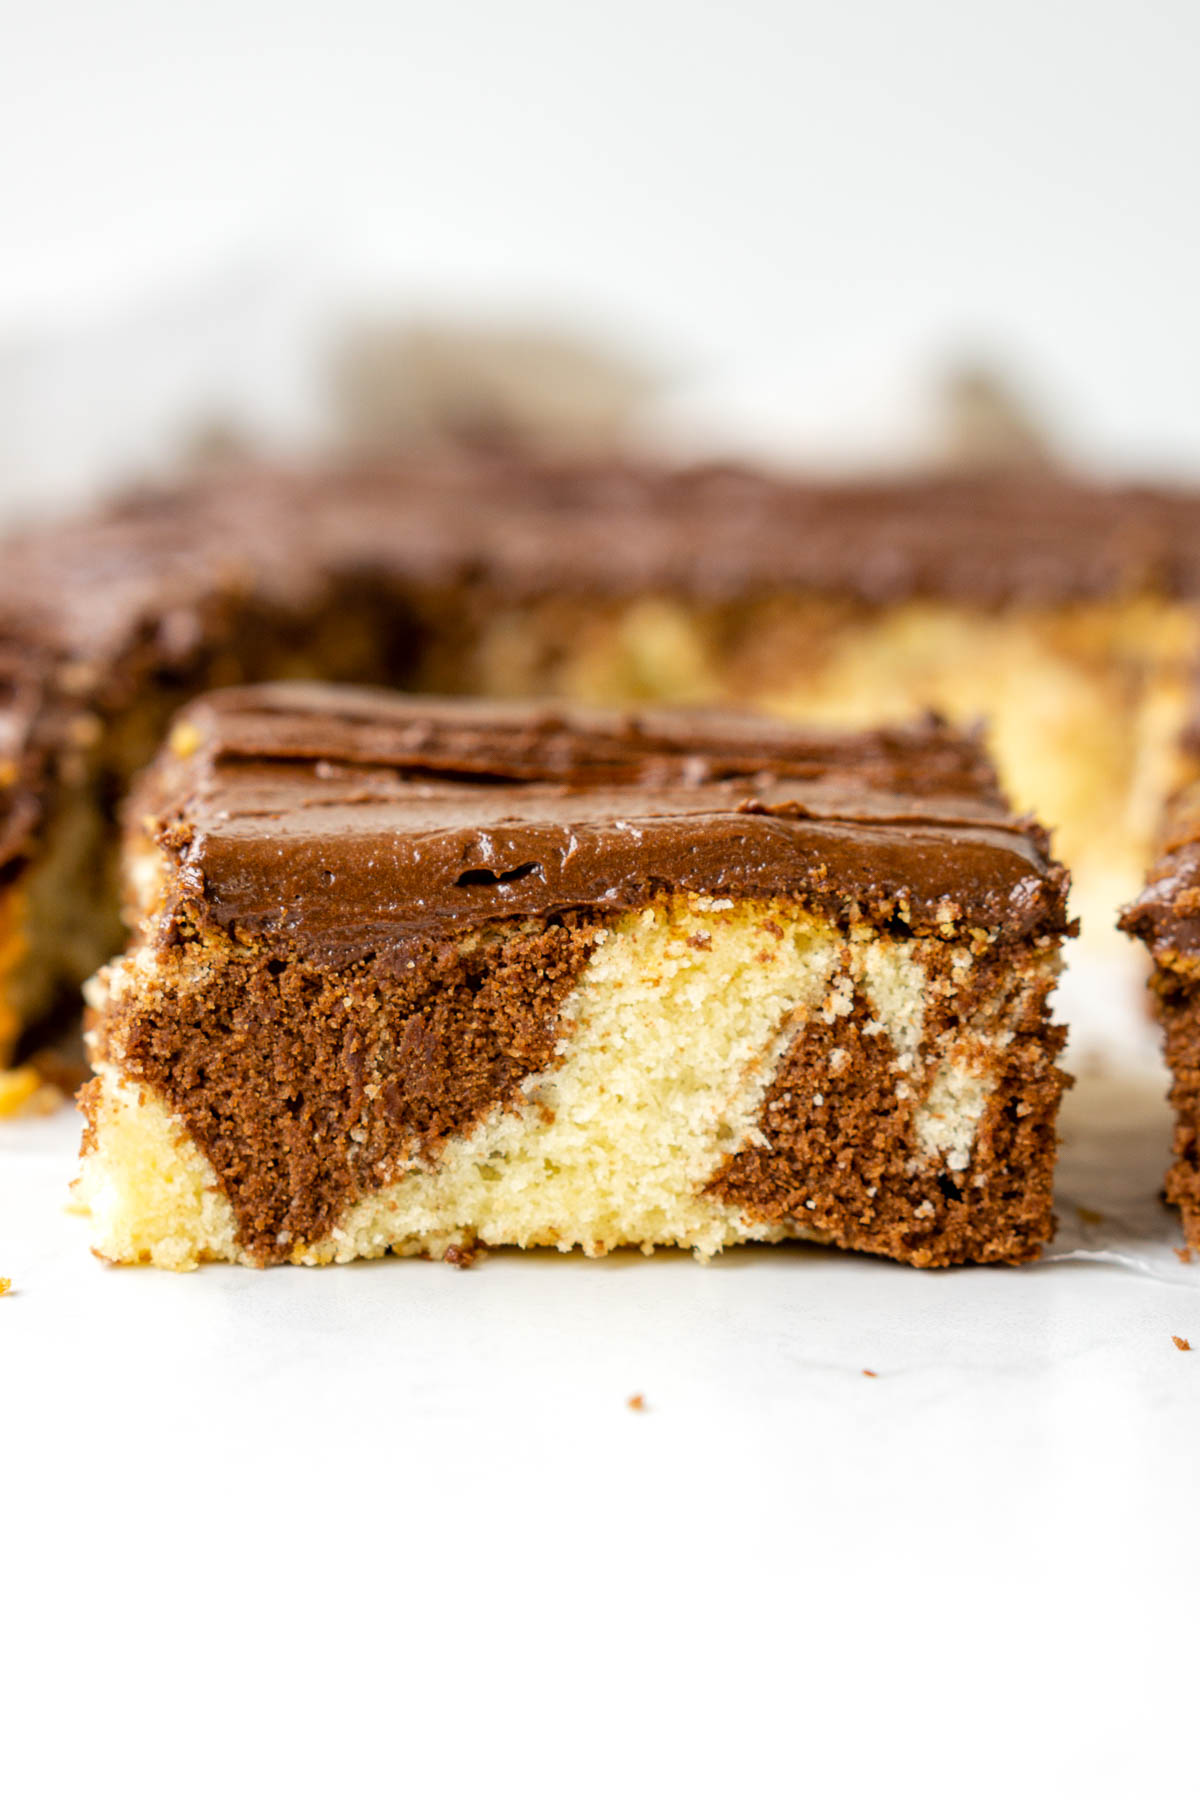 Close up of chocolate and vanilla swirls in a slice of marble cake